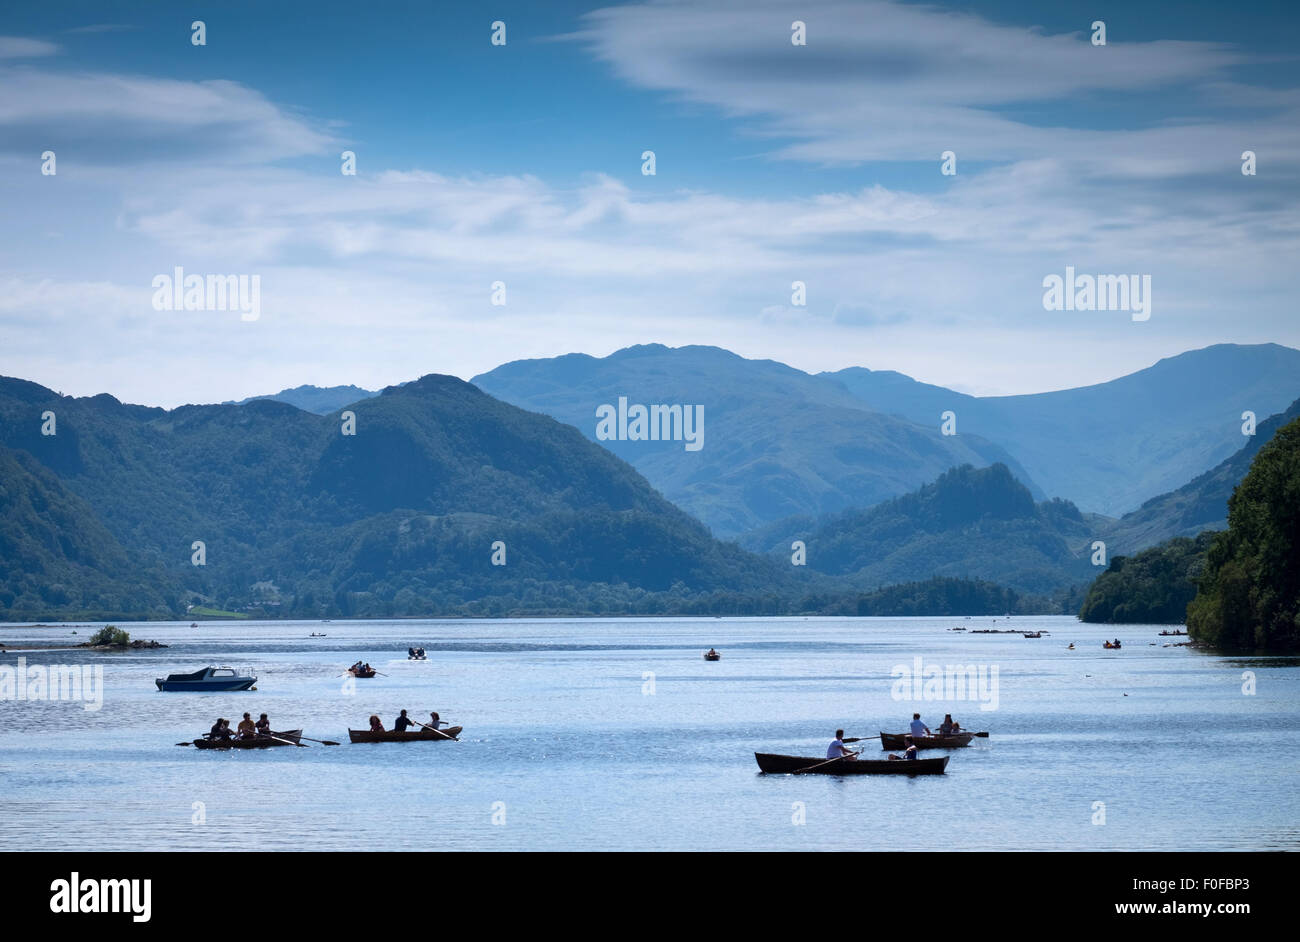 rowing boats on Derwentwater at Keswick in the Lake District, Cumbria, UK - Stock Image